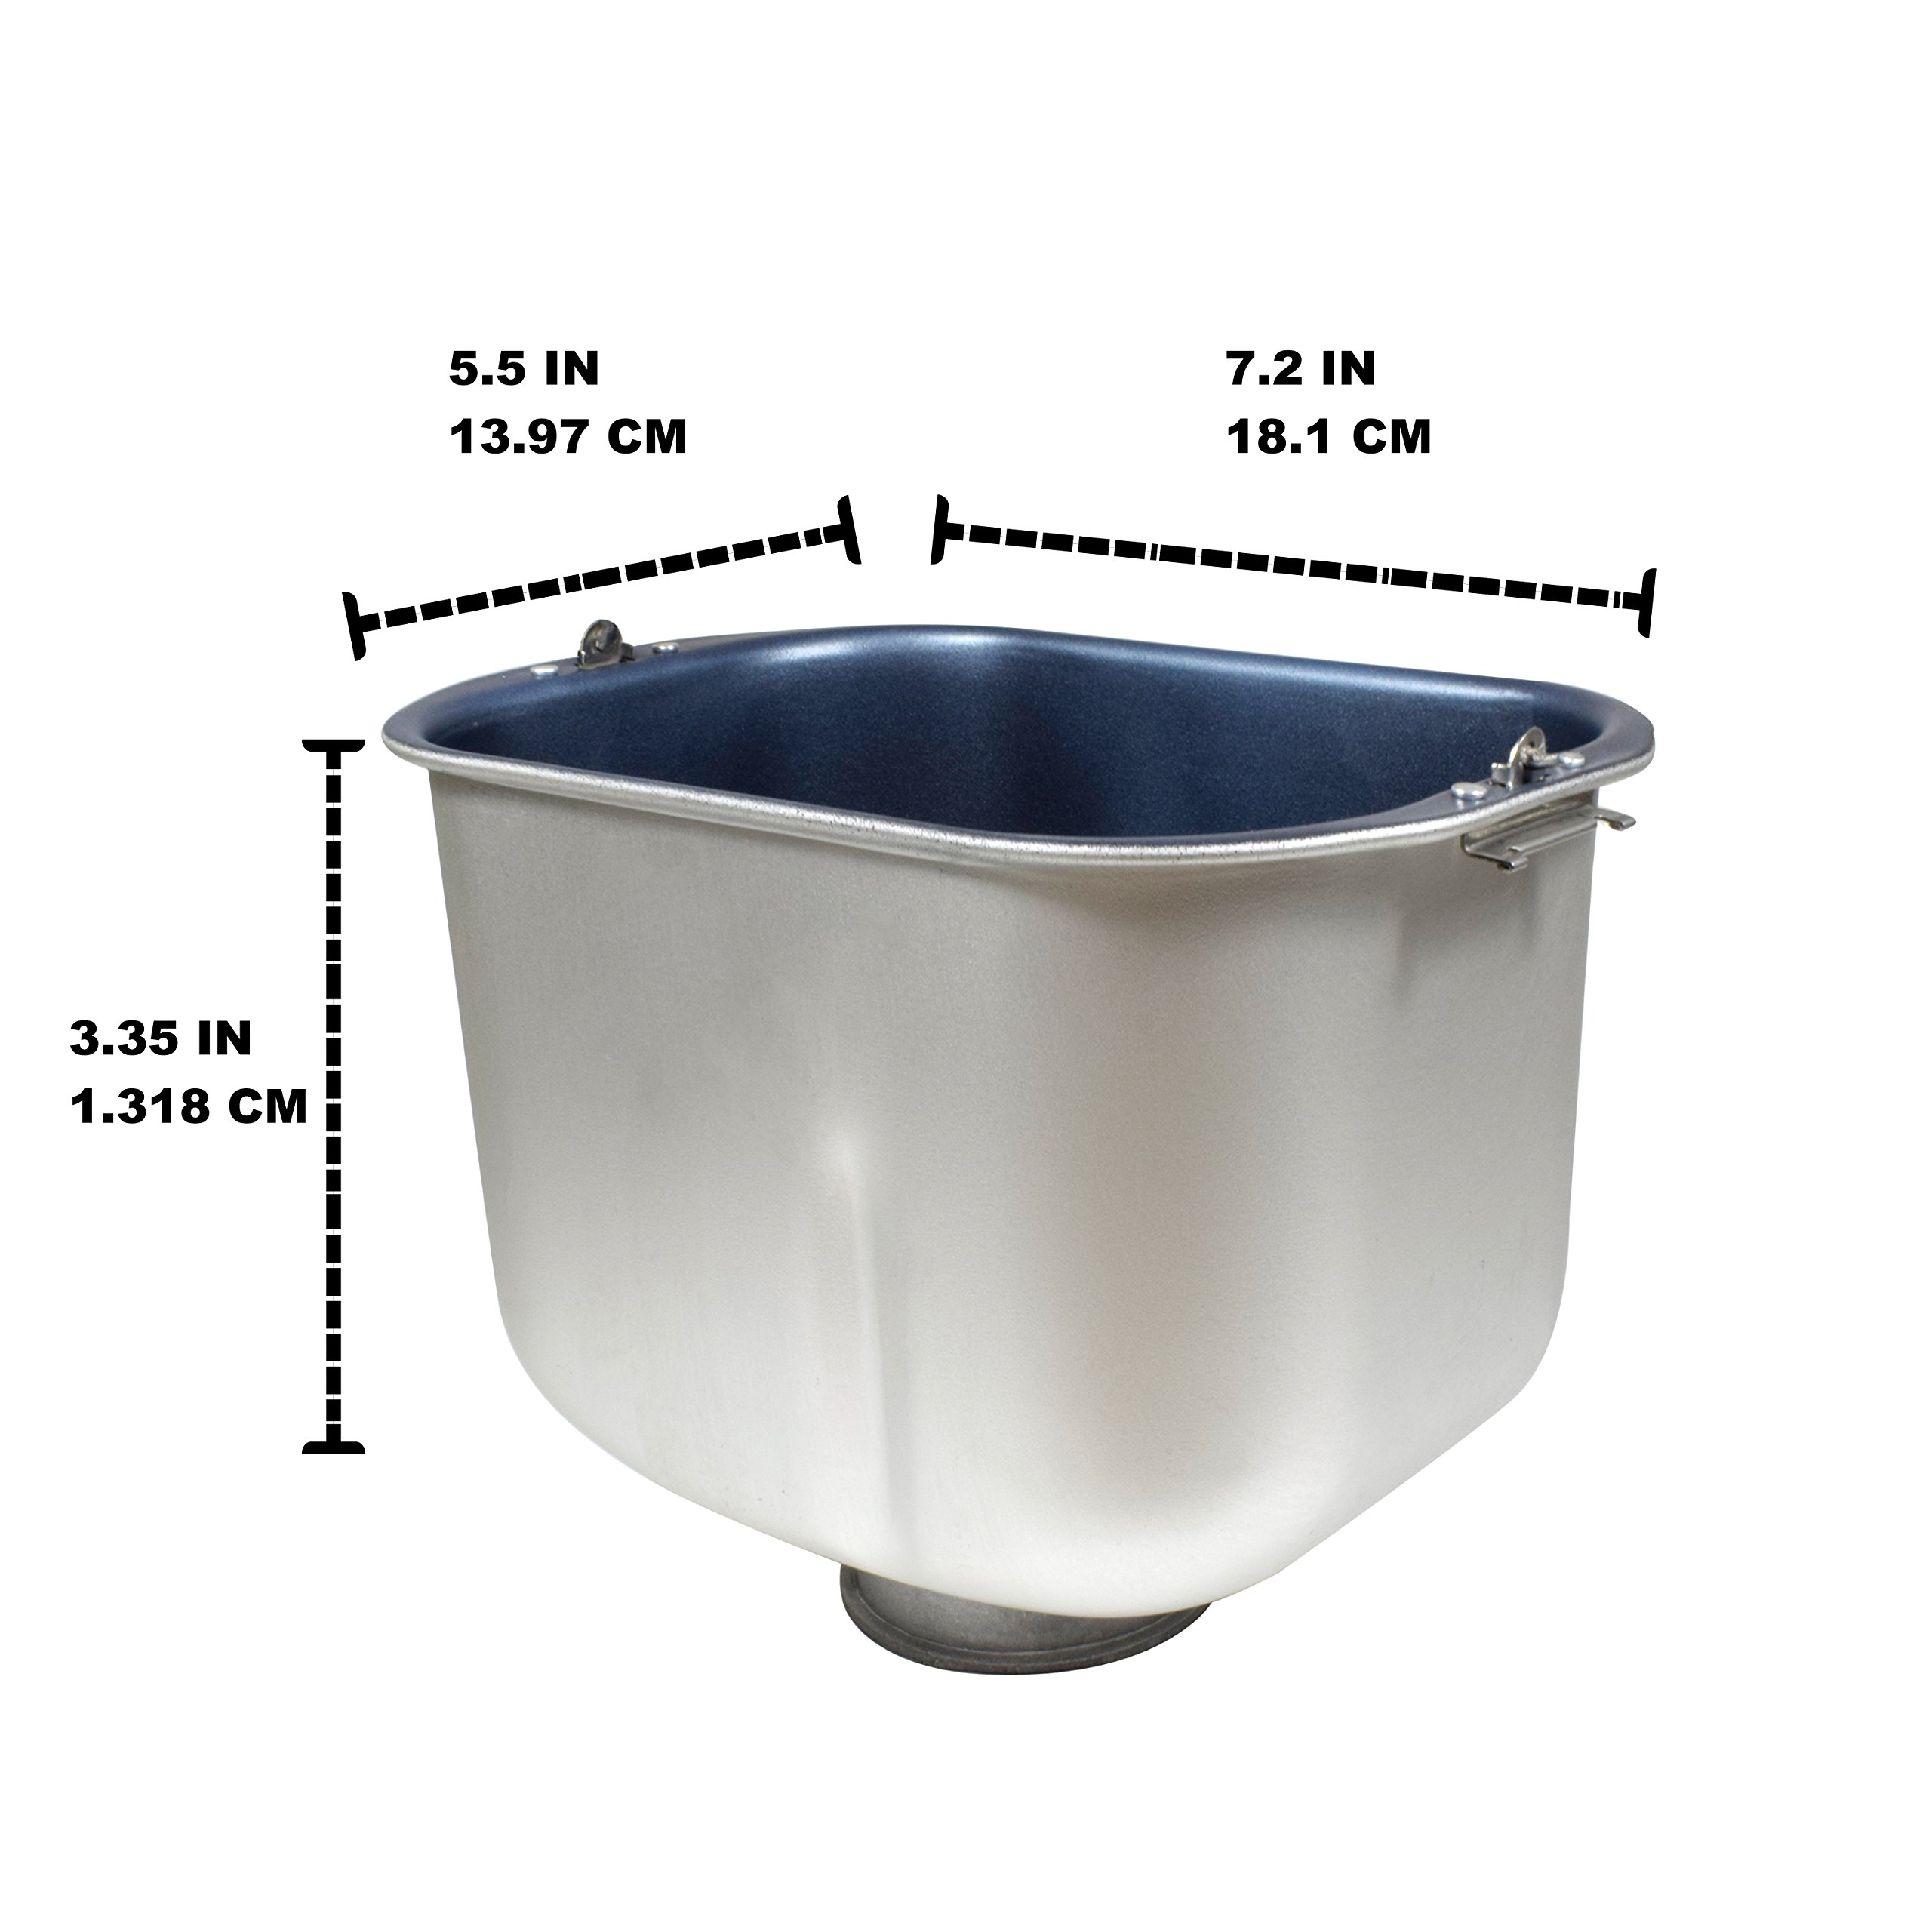 Univen (102529-000-000) Breadmaker Bread Pan Replaces Sunbeam Oster by Univen (Image #5)